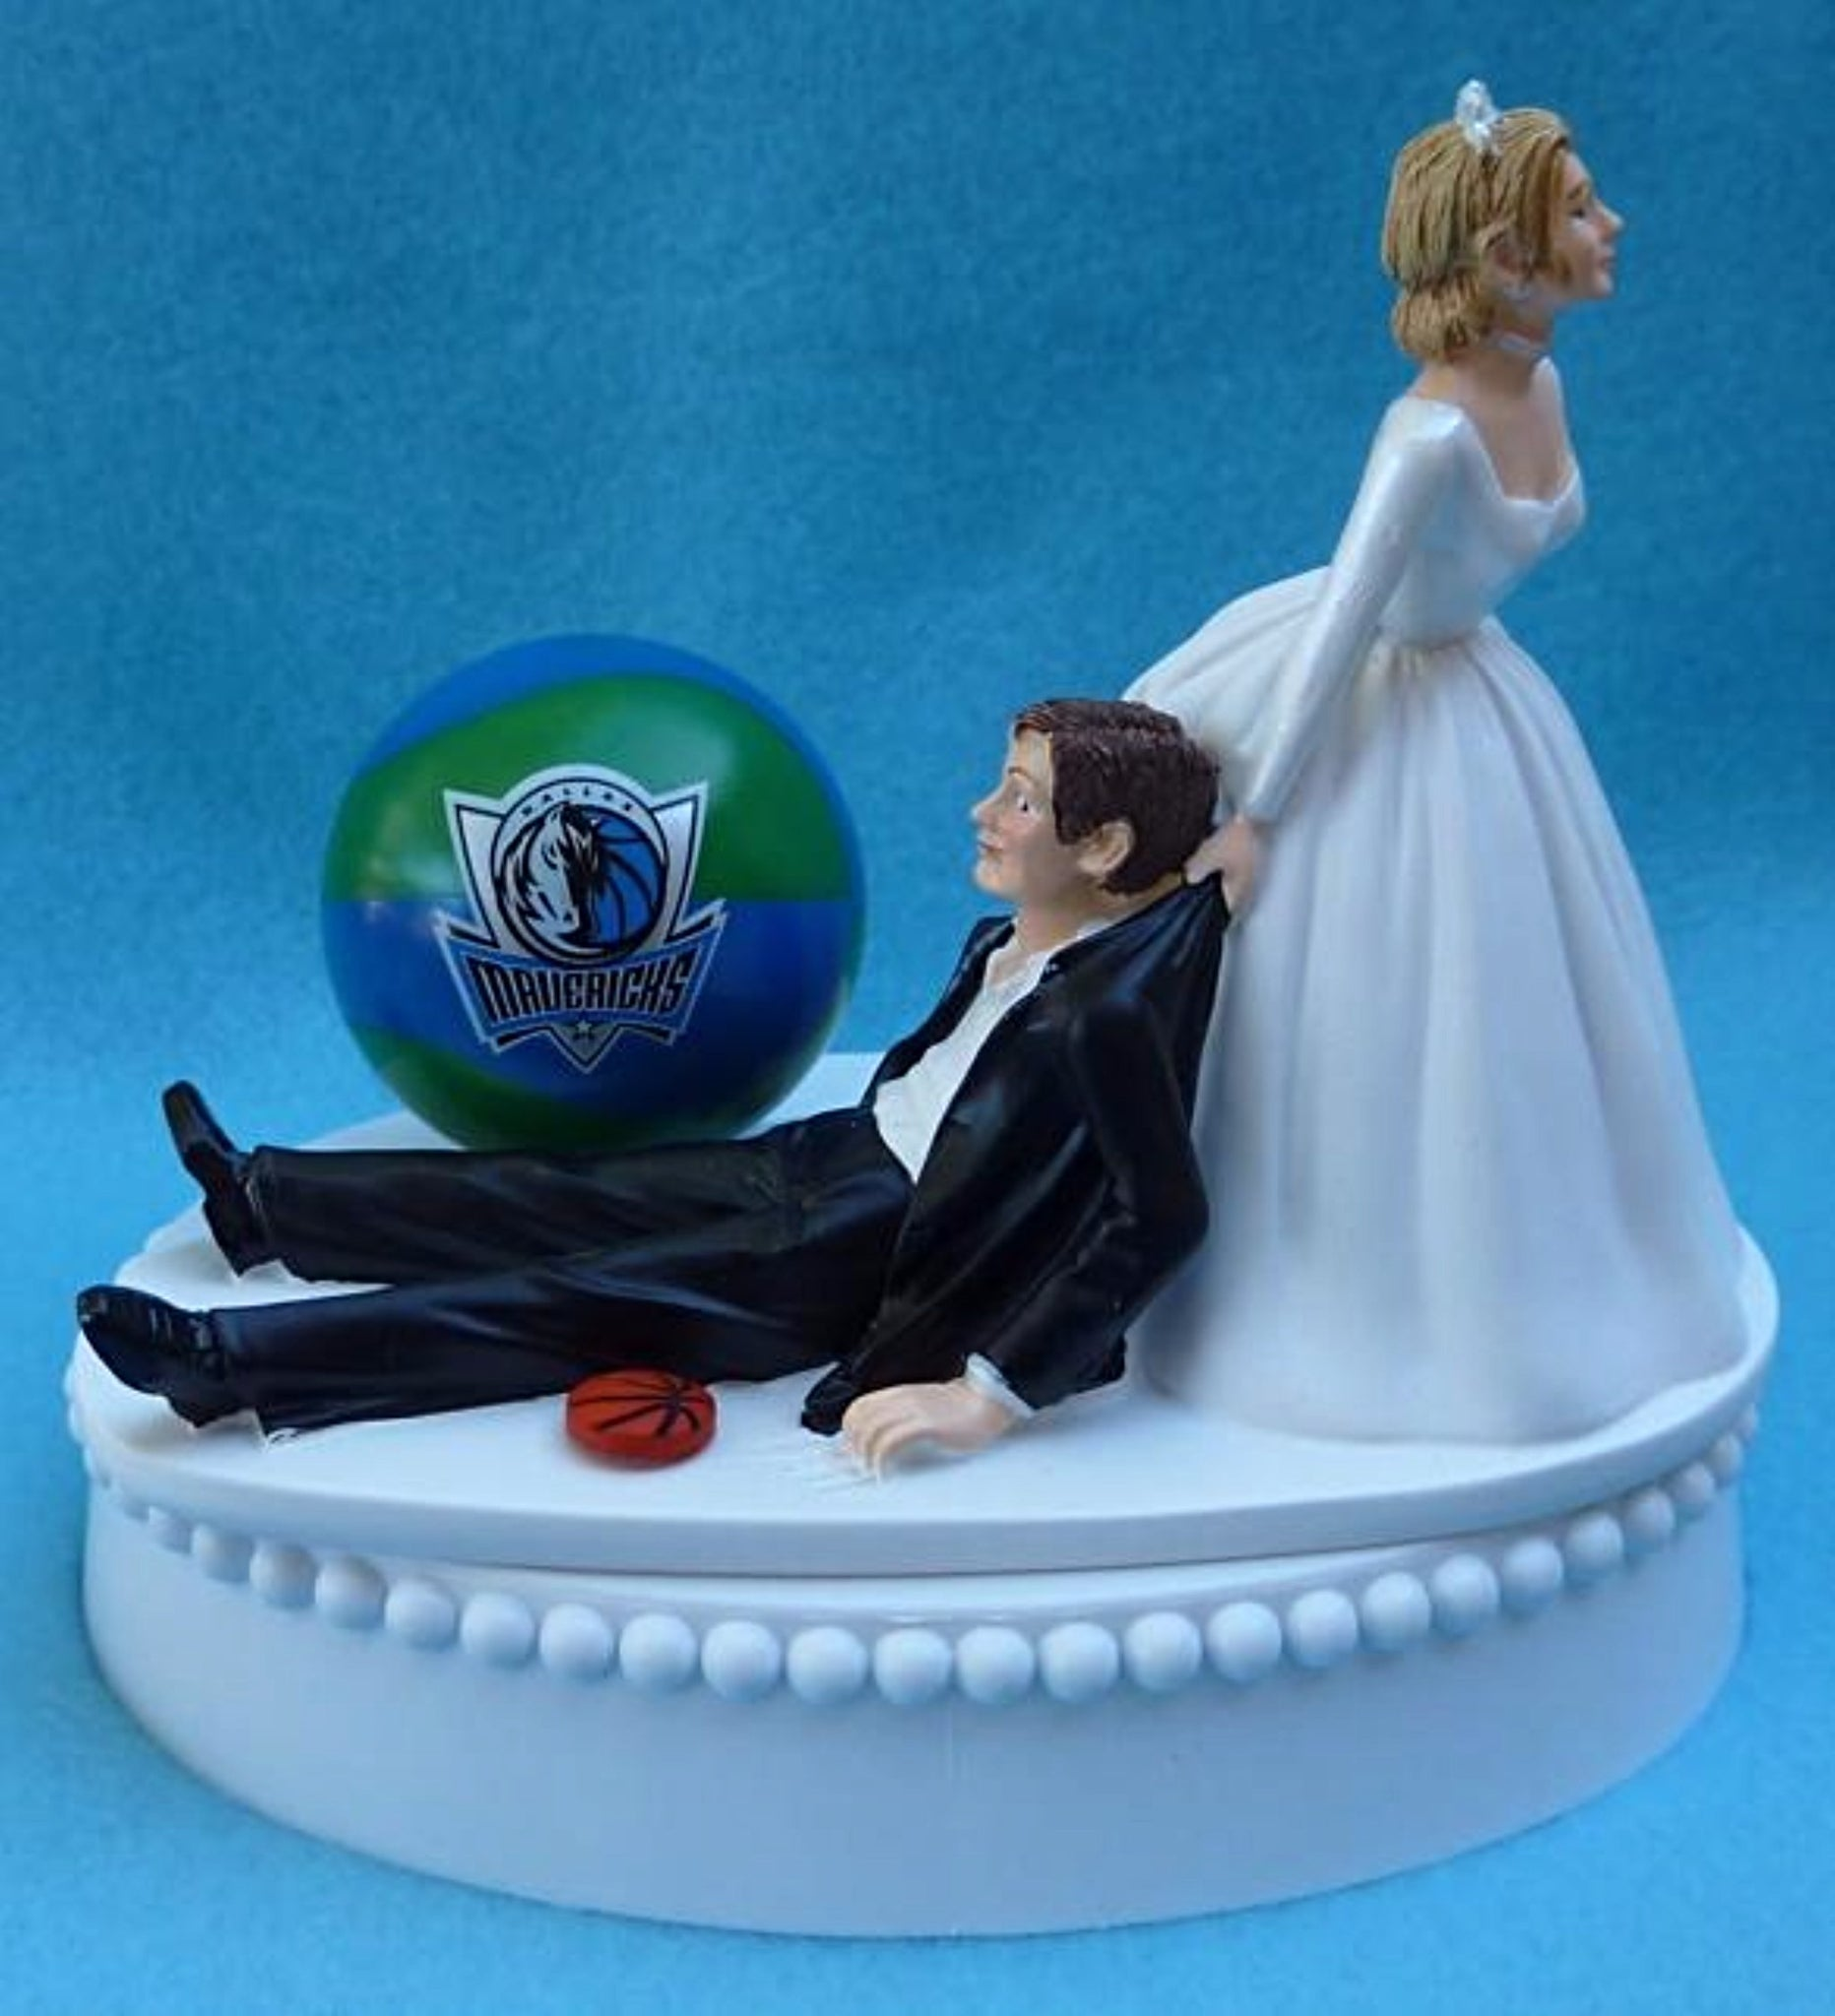 Dallas Mavericks wedding cake topper NBA basketball sports fans fun Mavs bride dragging groom humorous funny